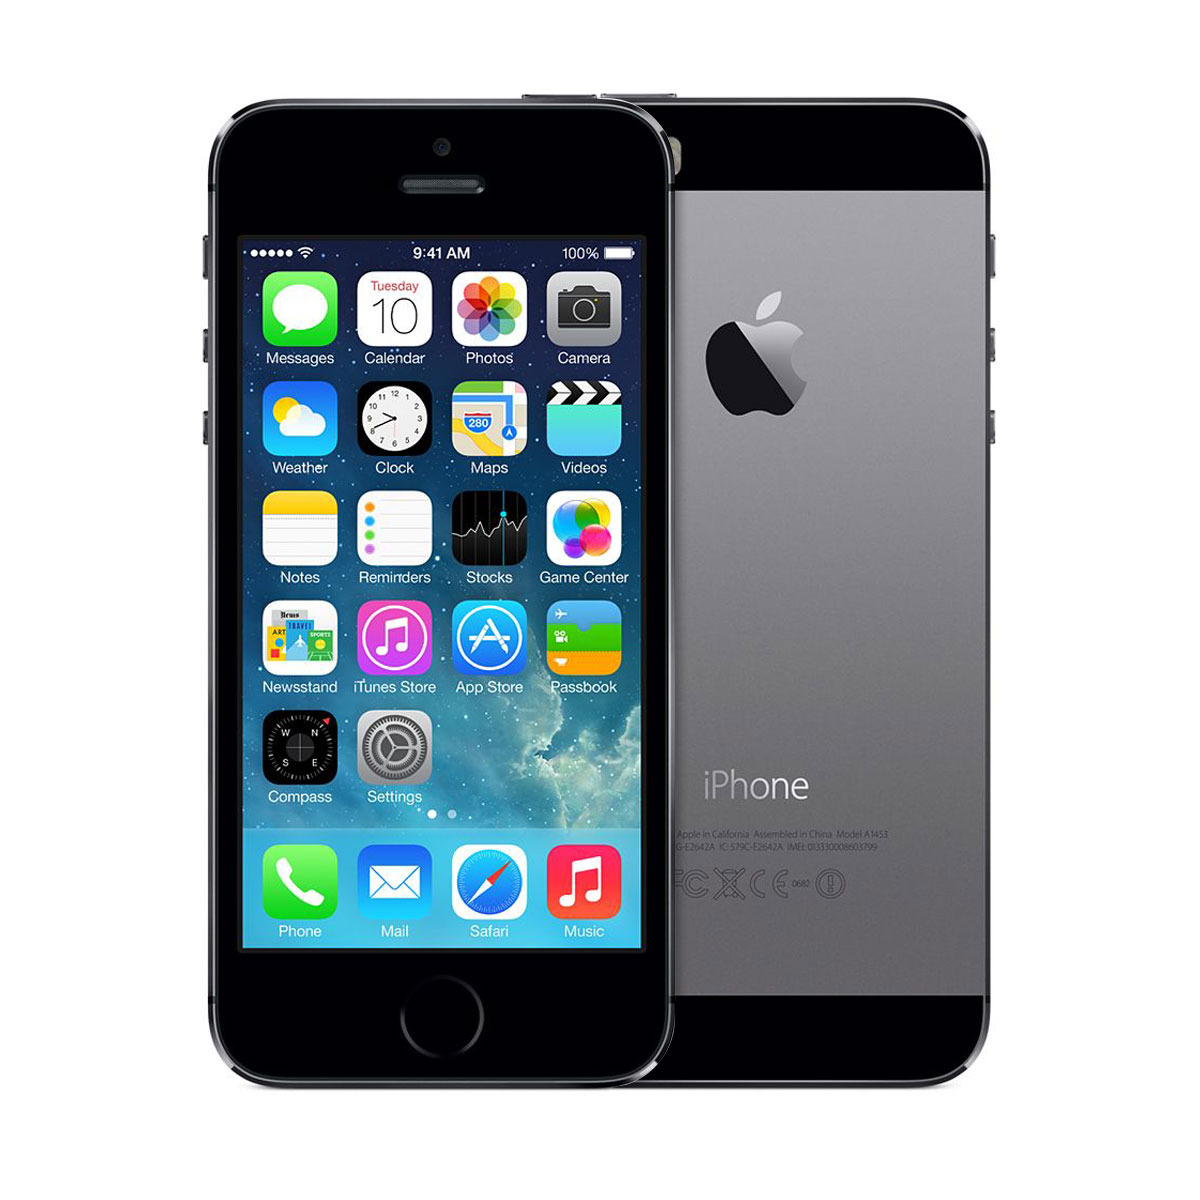 Unlocked apple iphone 5s 32gb ios 7 smartphone space gray me308ll a